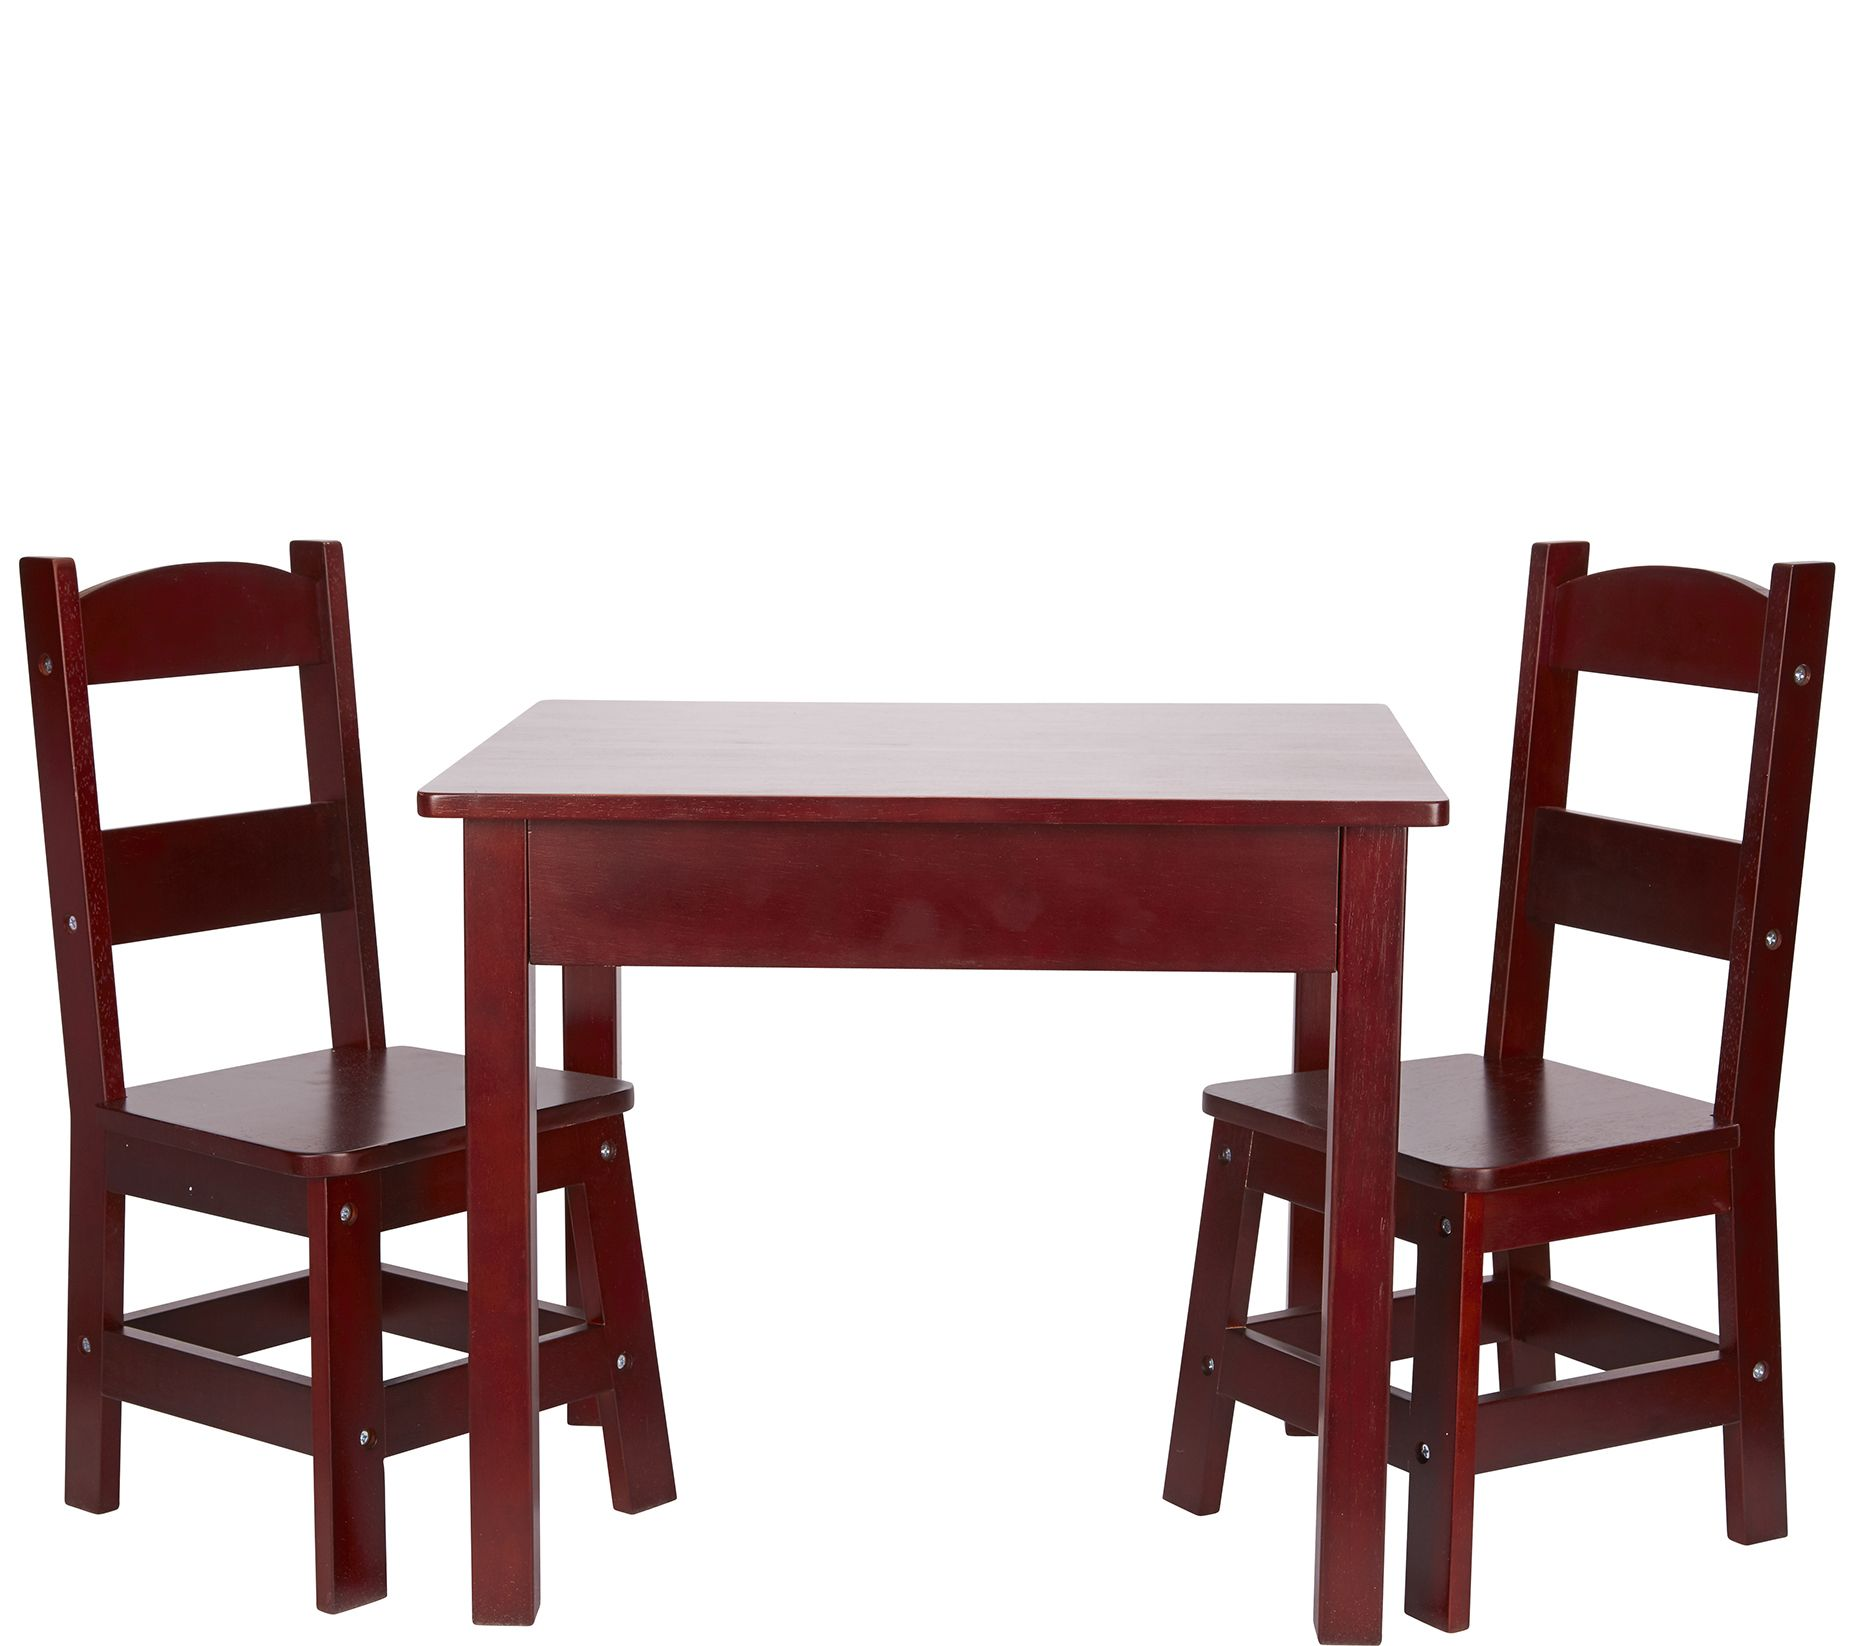 Melissa Doug Wooden Table Chairs QVC